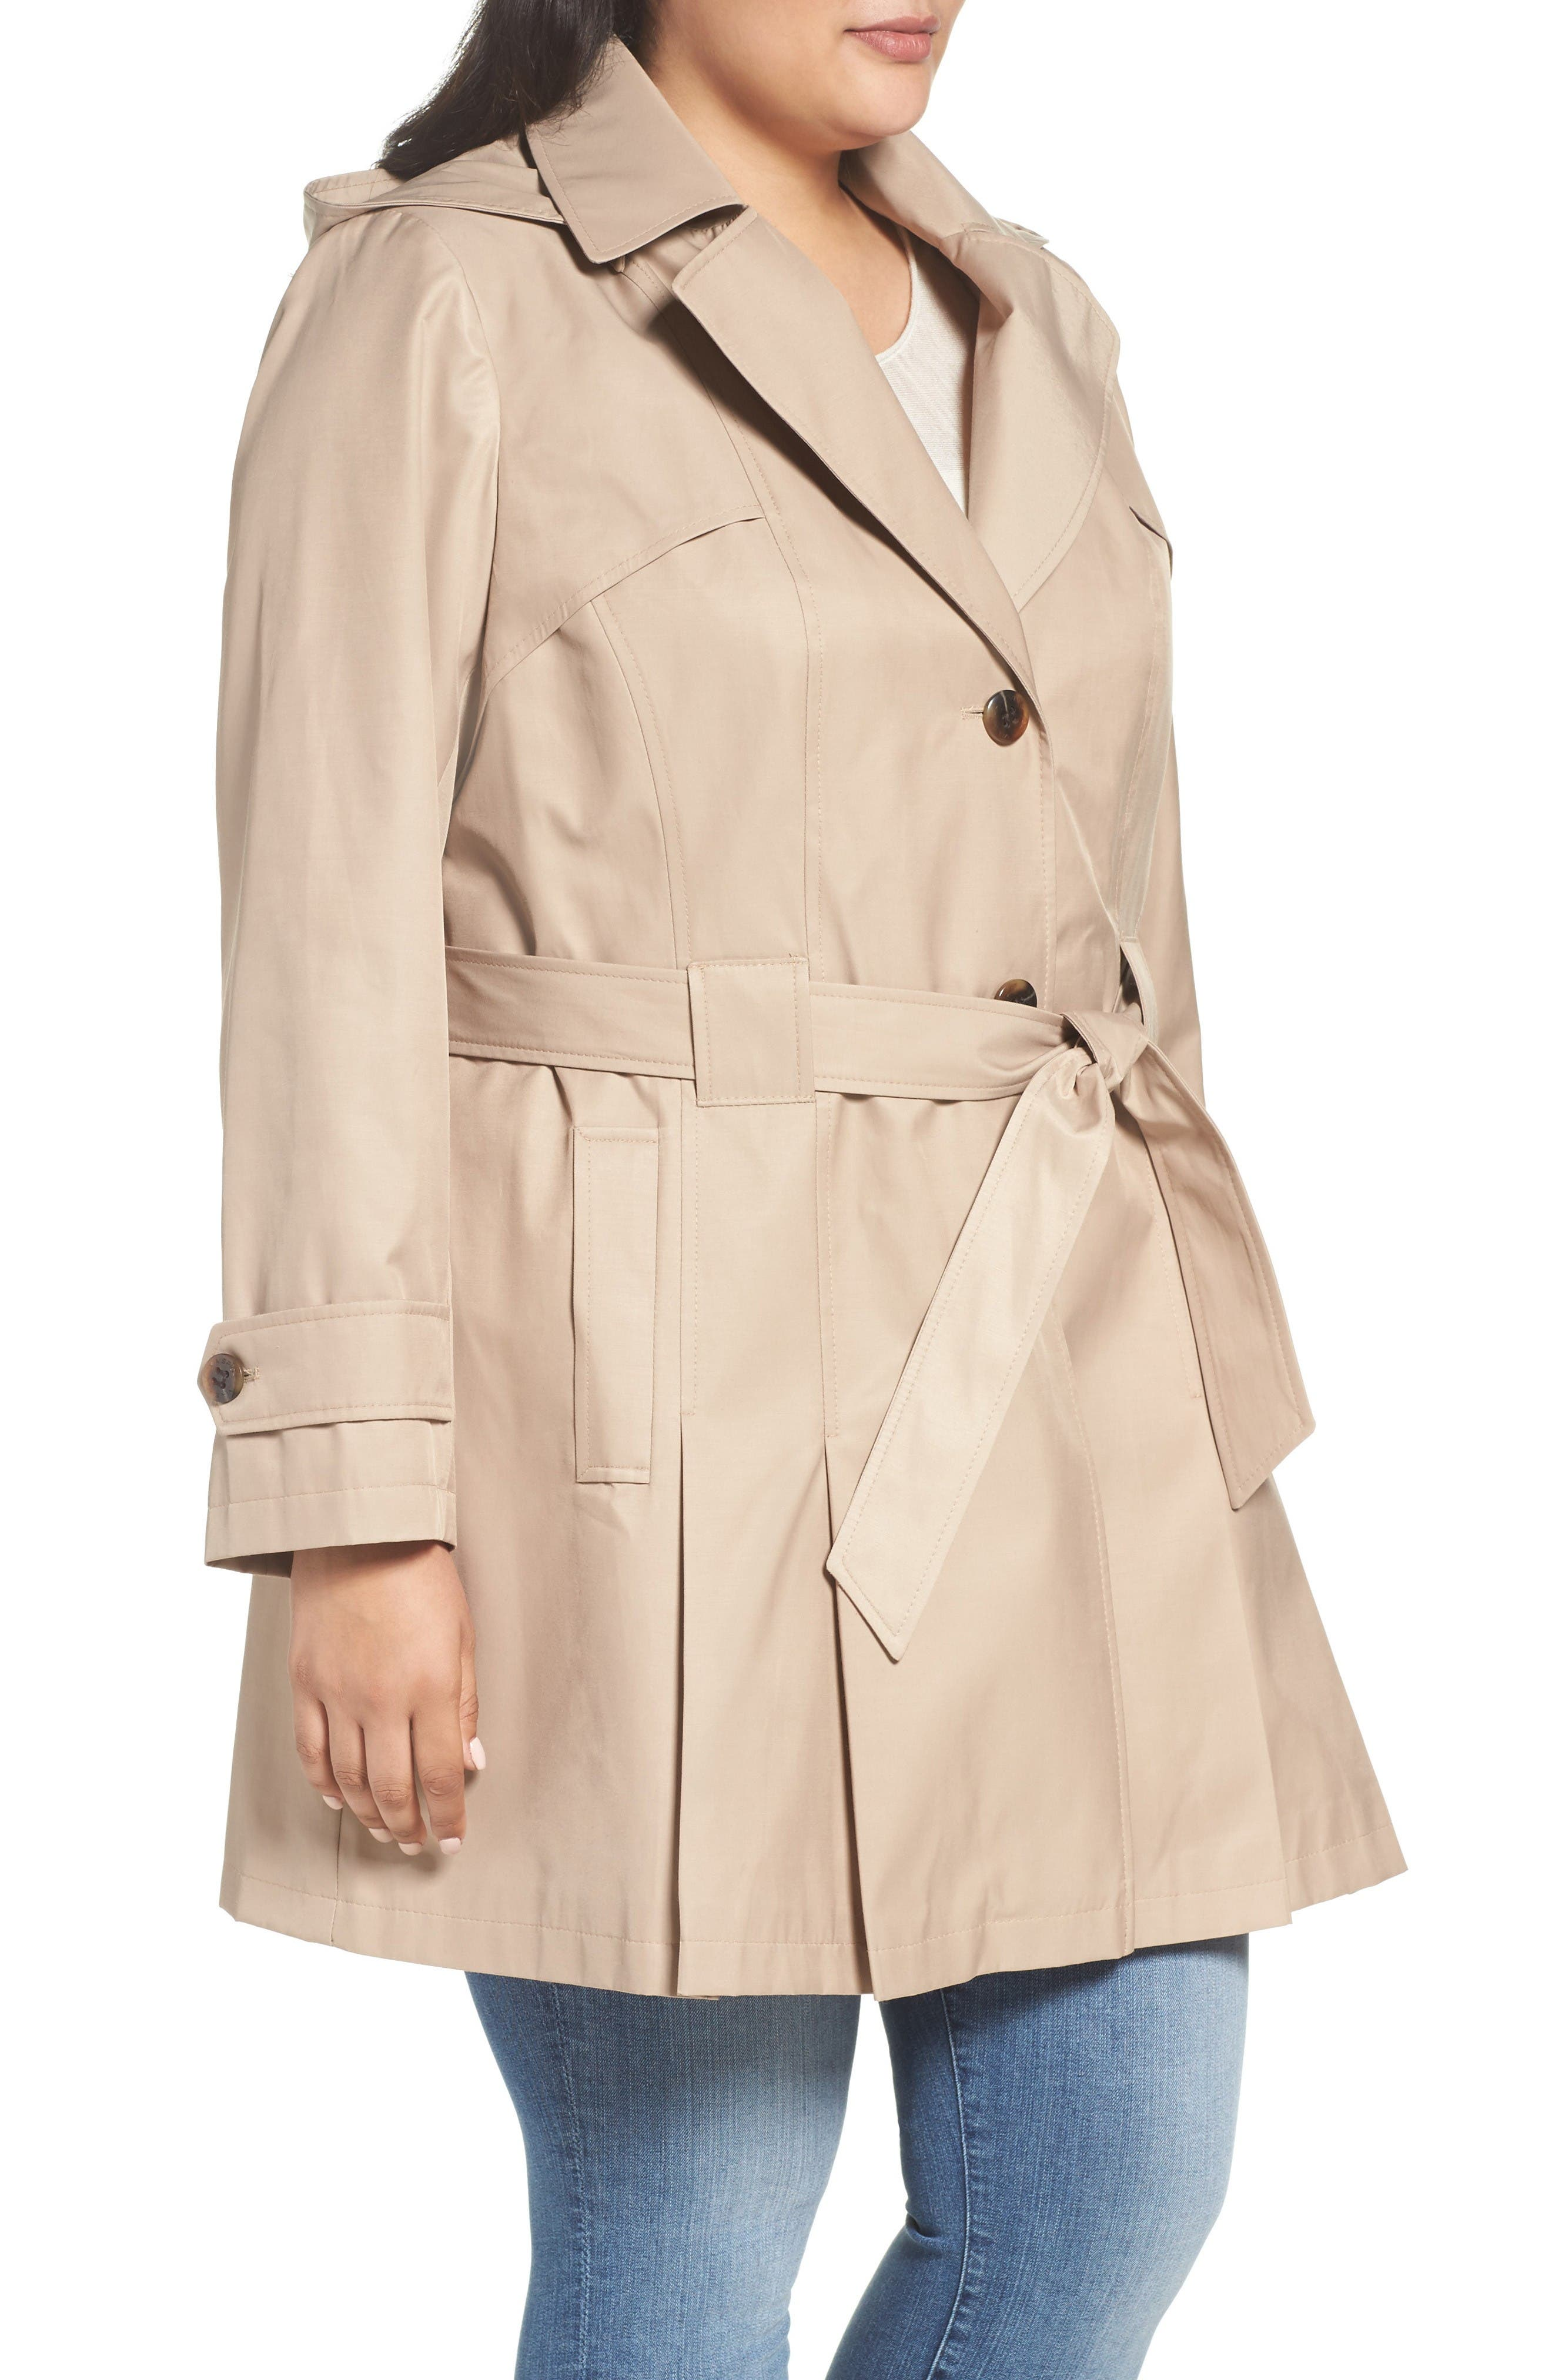 'Scarpa' Single Breasted Trench Coat,                             Alternate thumbnail 3, color,                             New Sand